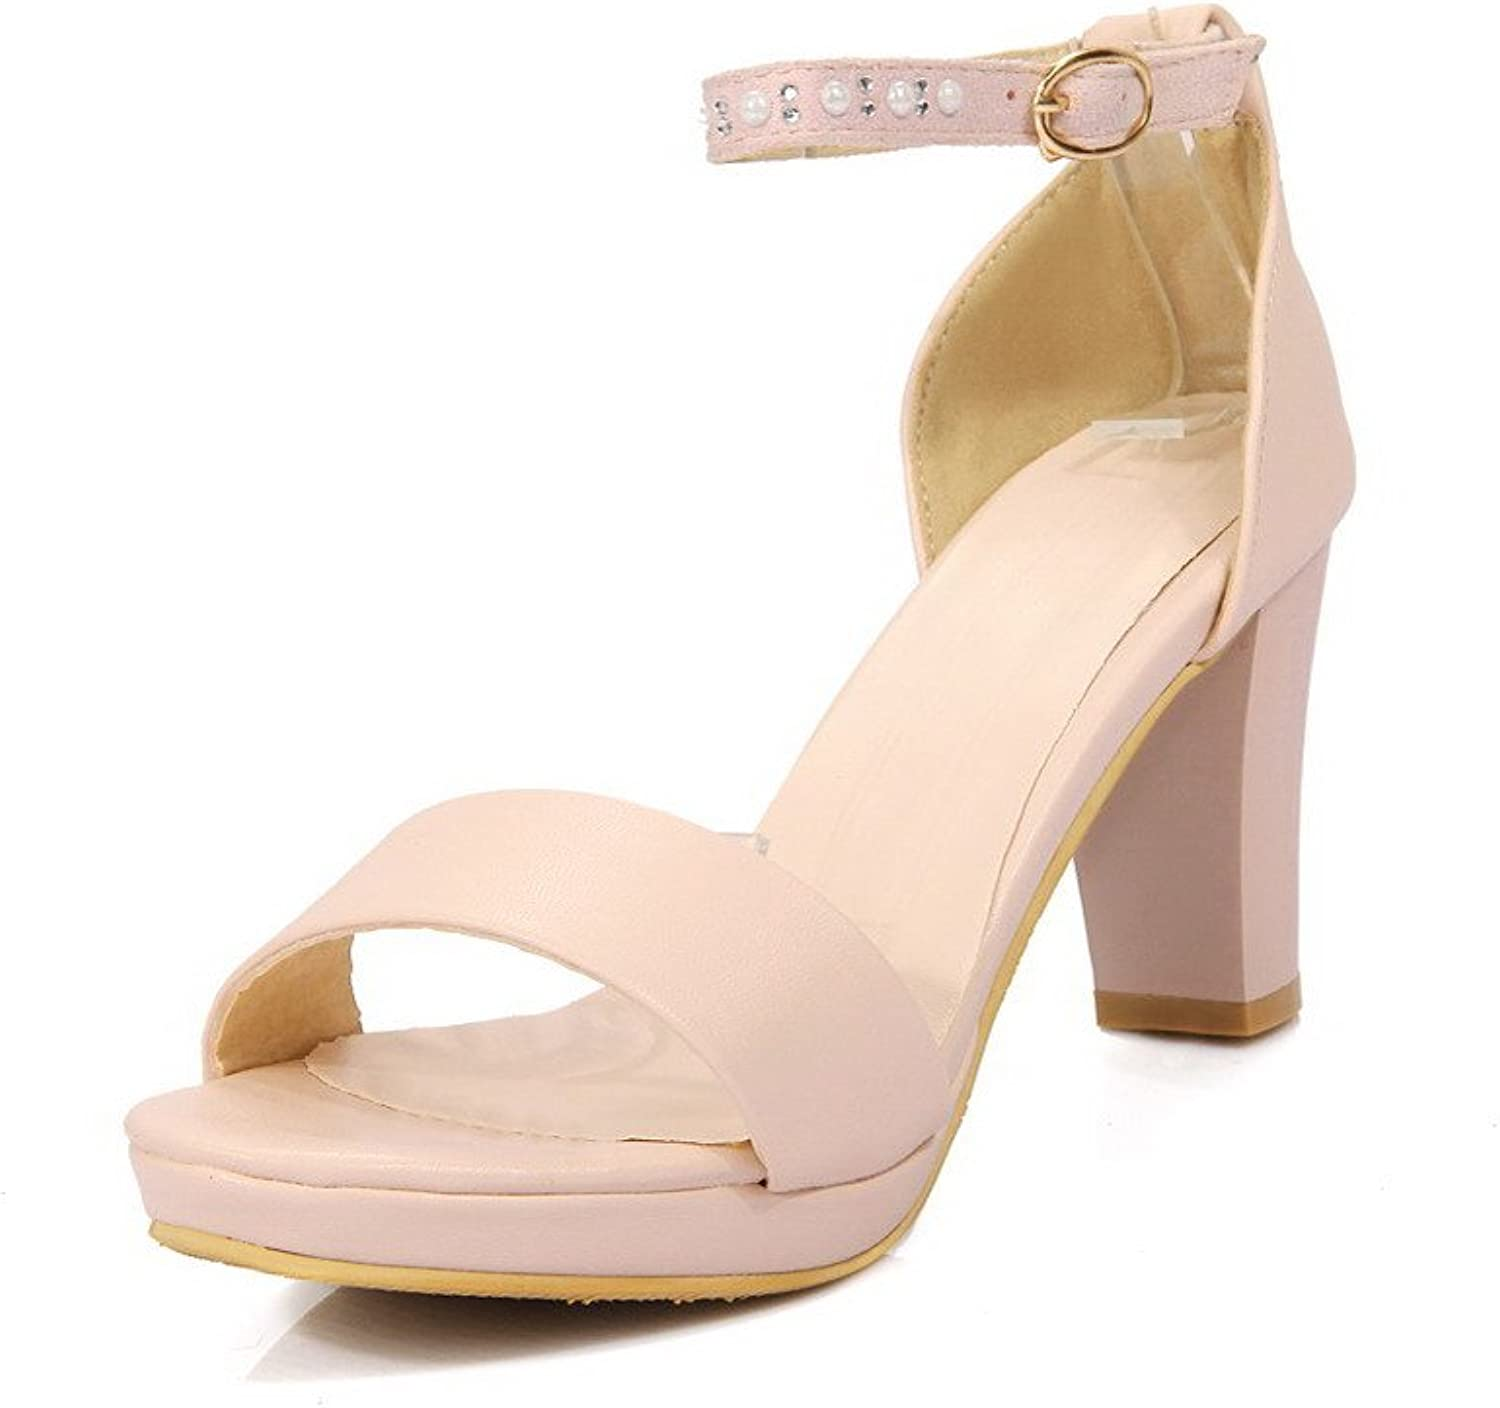 AmoonyFashion Women's Solid PU High-Heels Open Toe Buckle Heeled-Sandals with Zircon